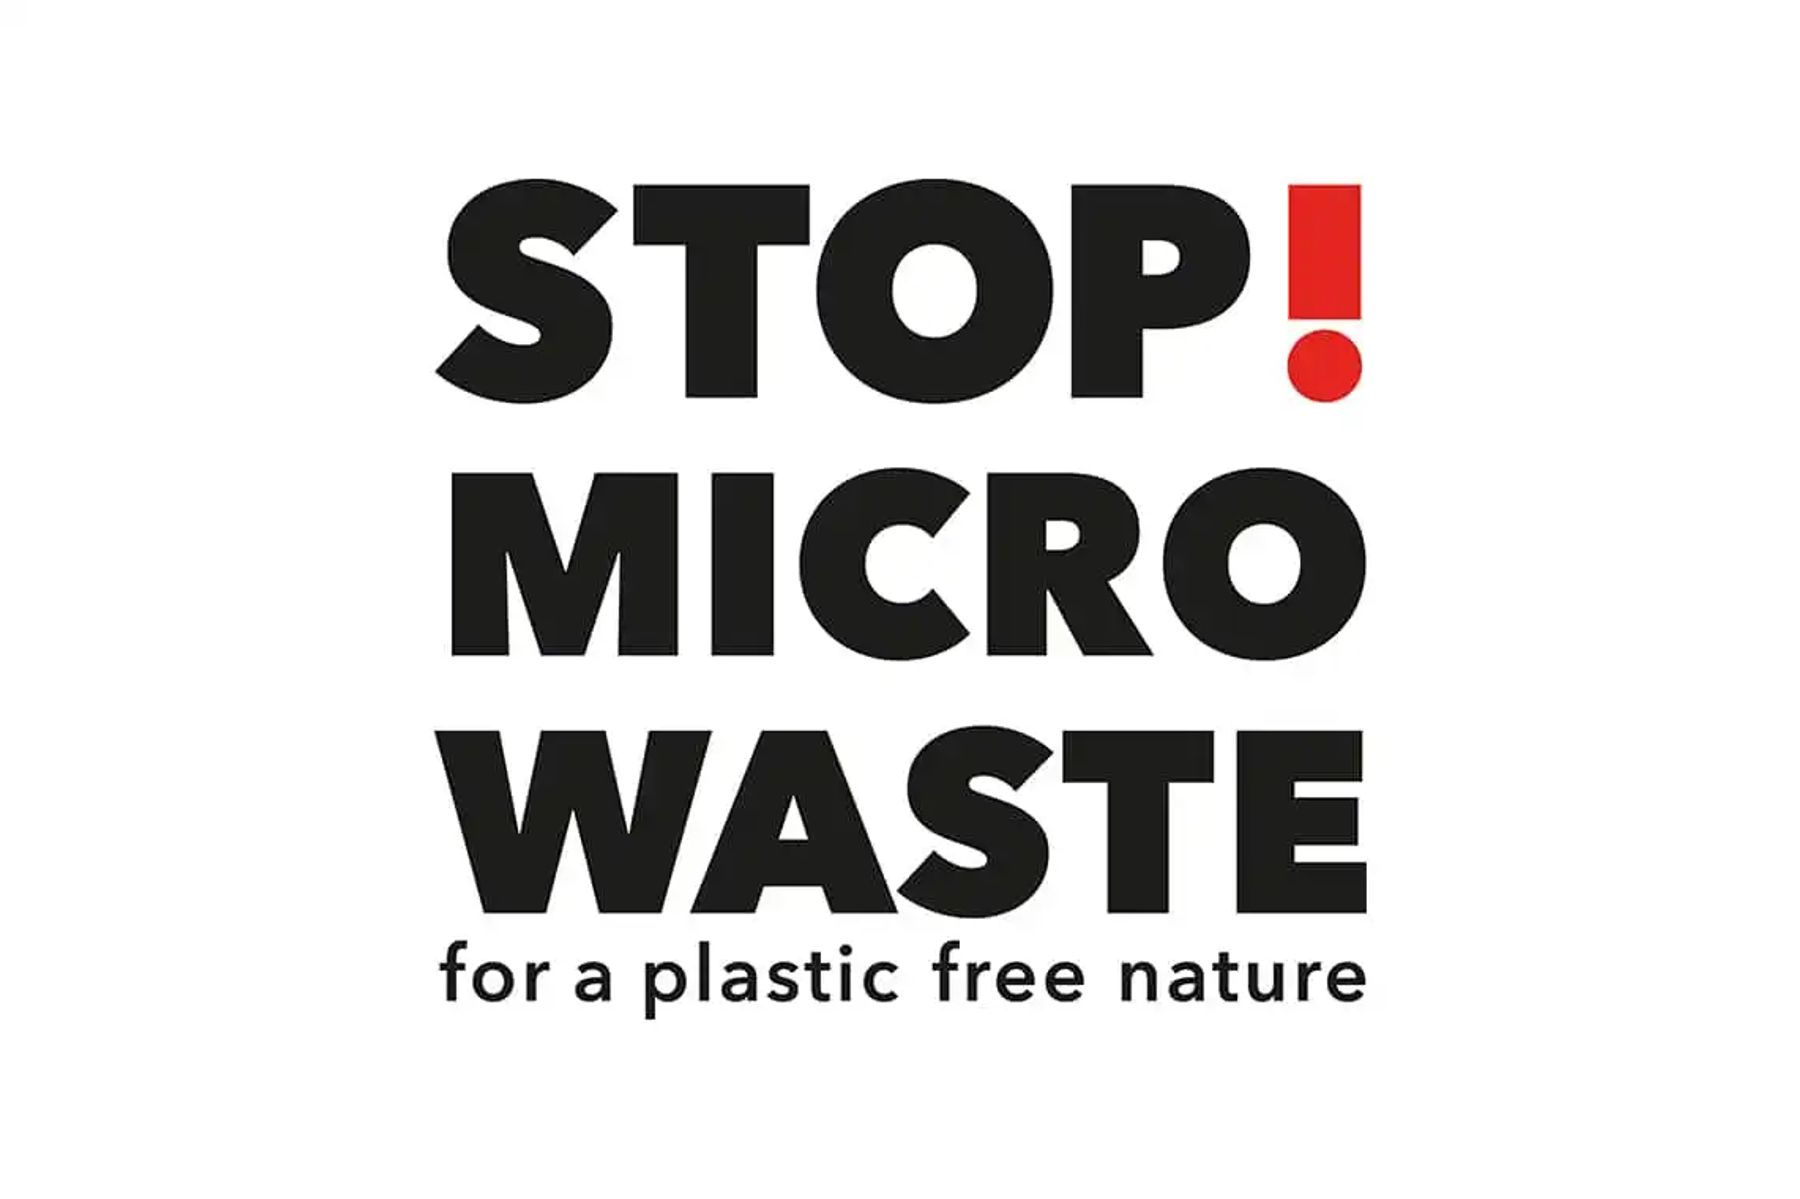 Stop Micro Waste for a plastic free nature